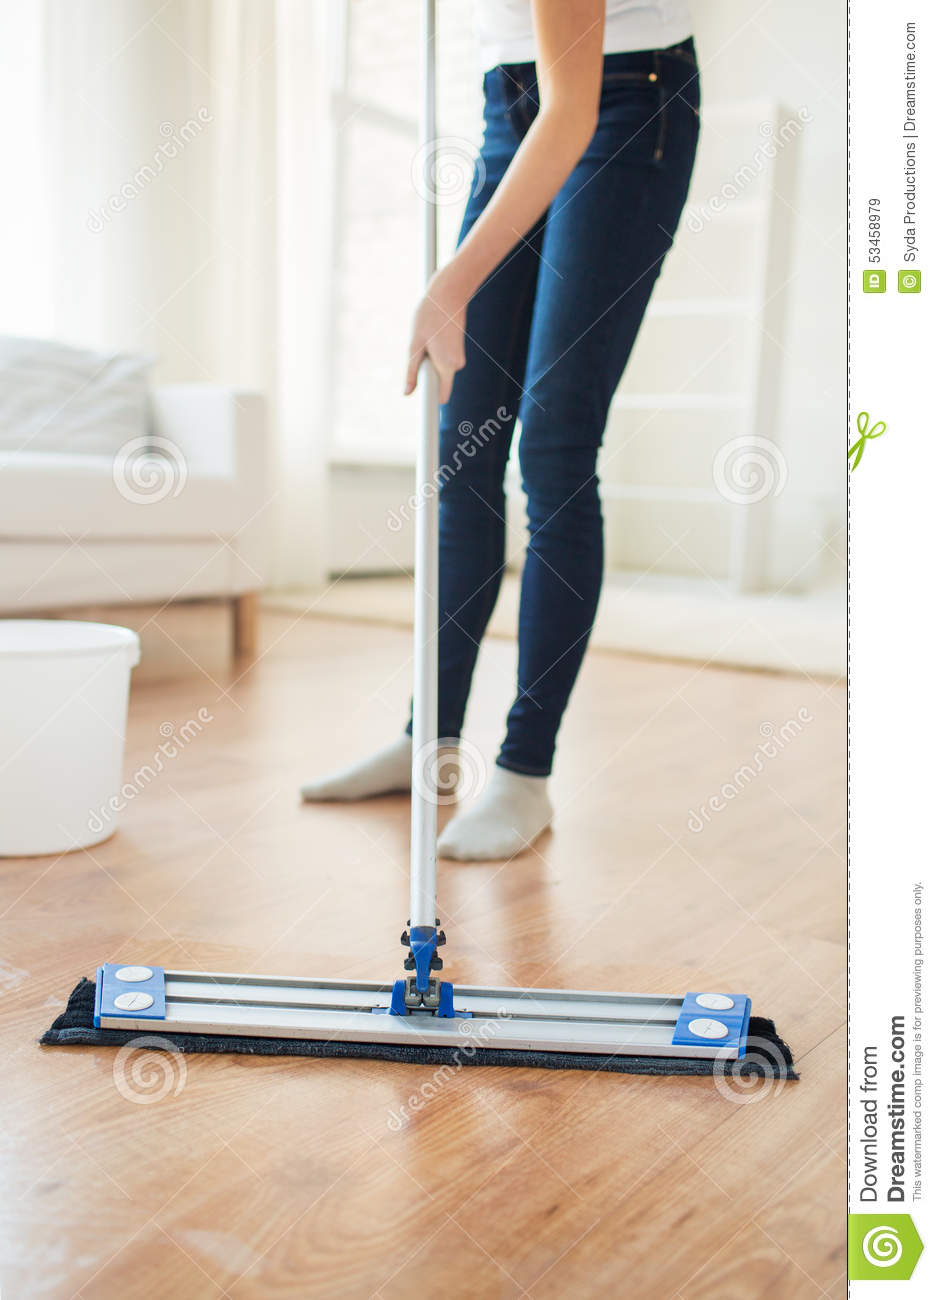 Cleaning floor mop chores housekeeping stock photography for Floor someone